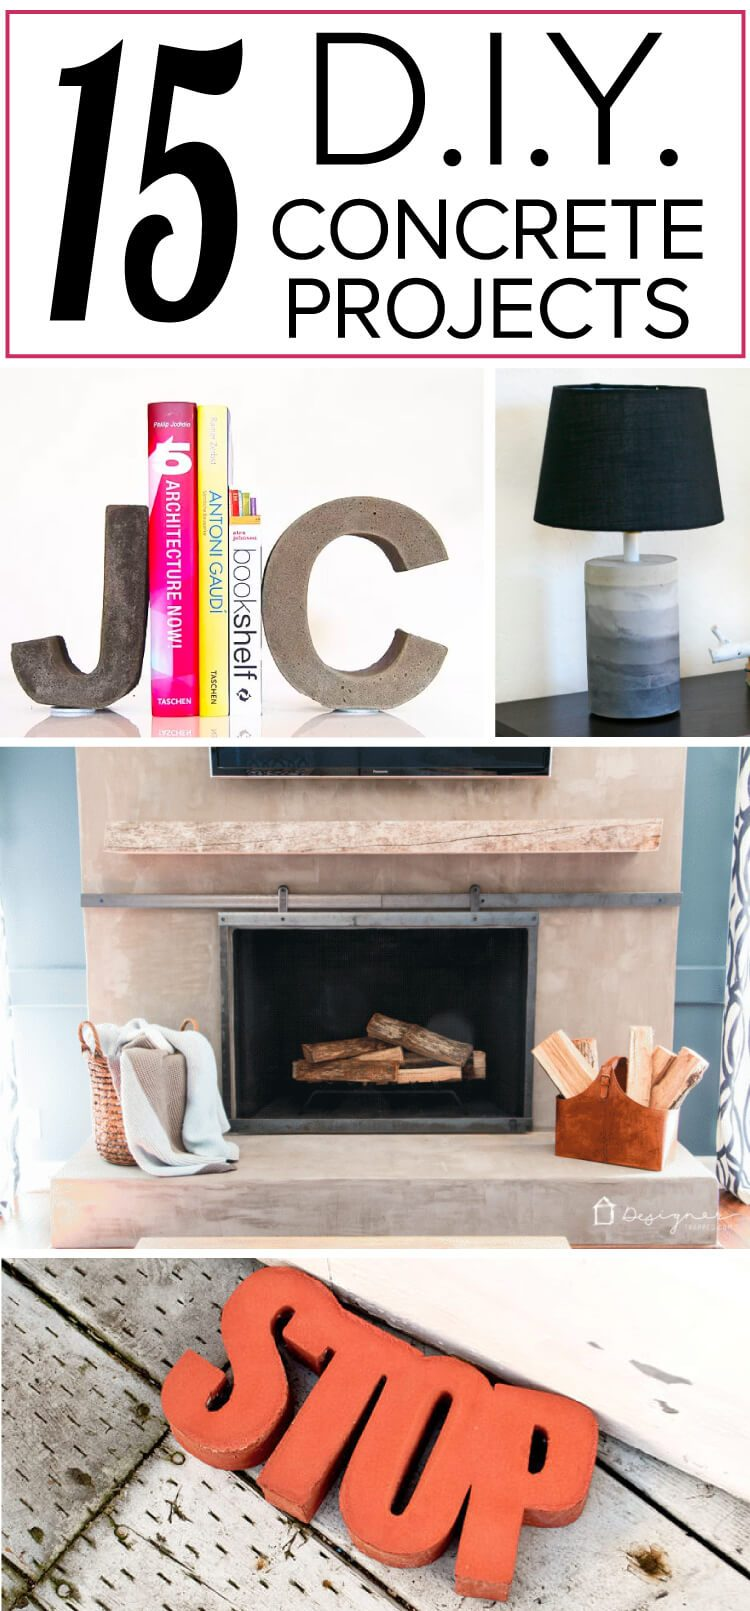 OMG, these DIY concrete projects are mind-blowing! I knew you could make DIY concrete countertops, but I had no idea how many other things you could create with concrete. I can't wait to try number 3 and number 7!